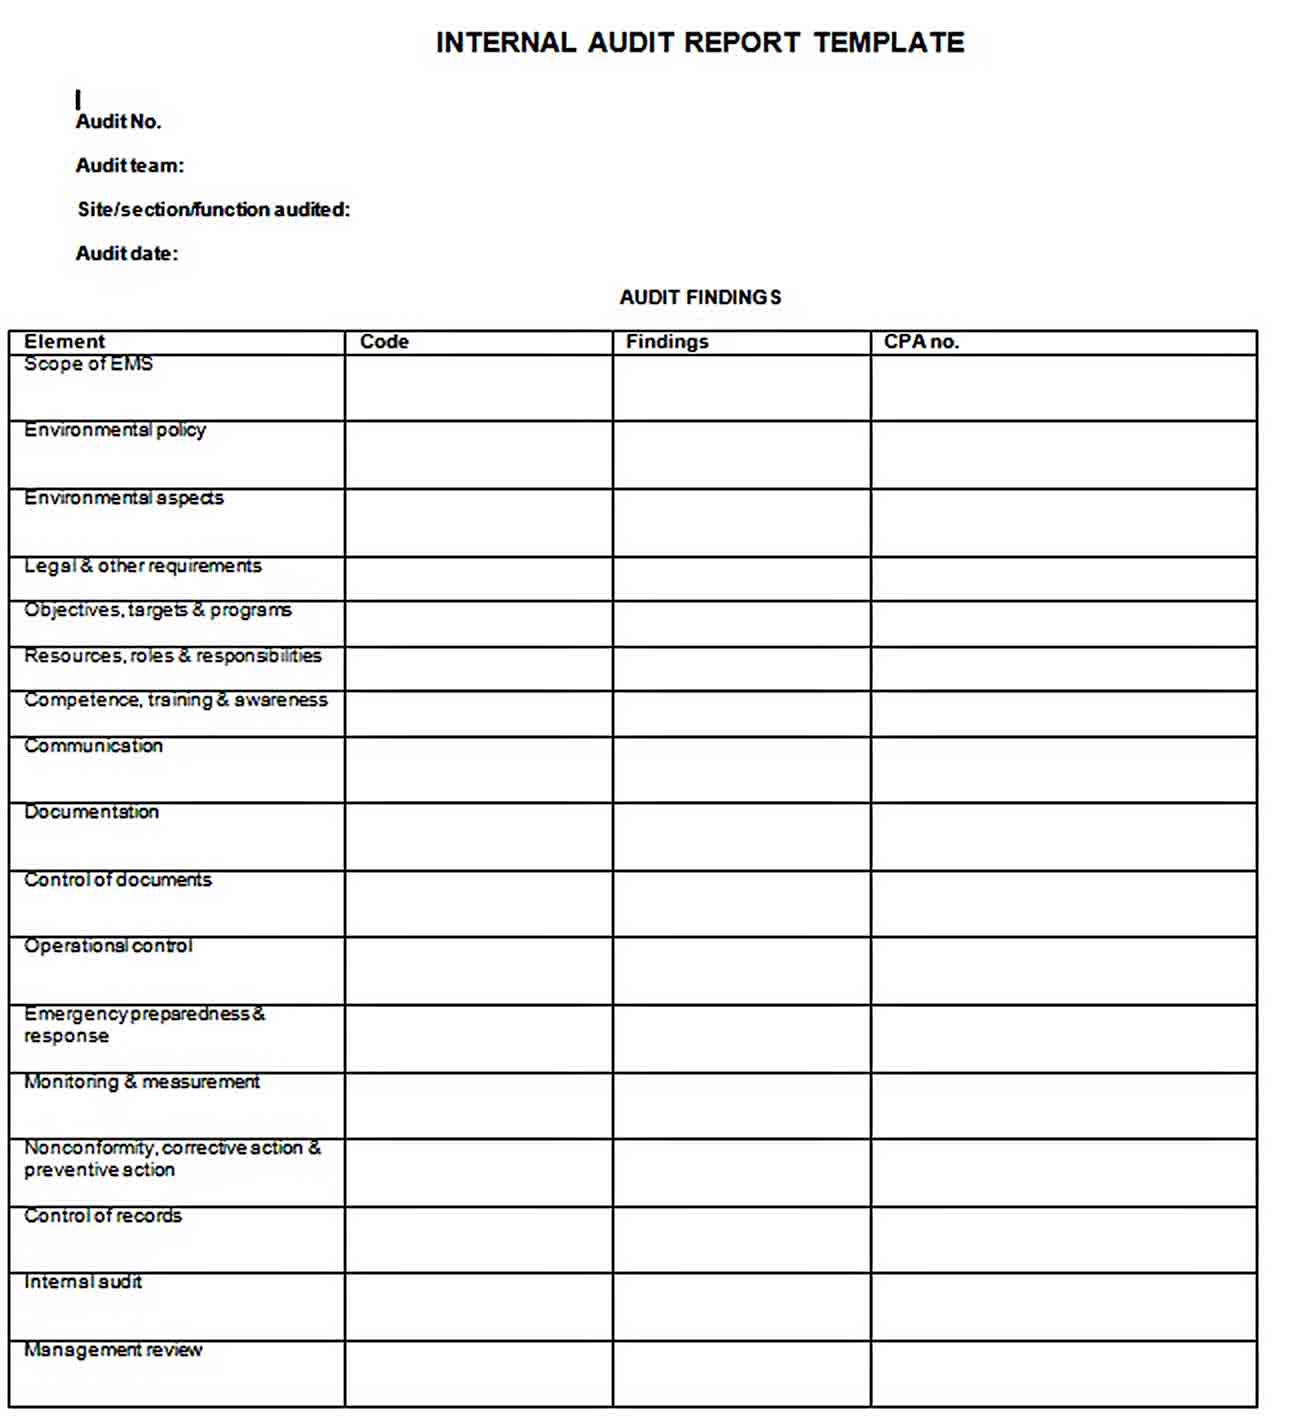 Templates Internal Audit Report 1 1